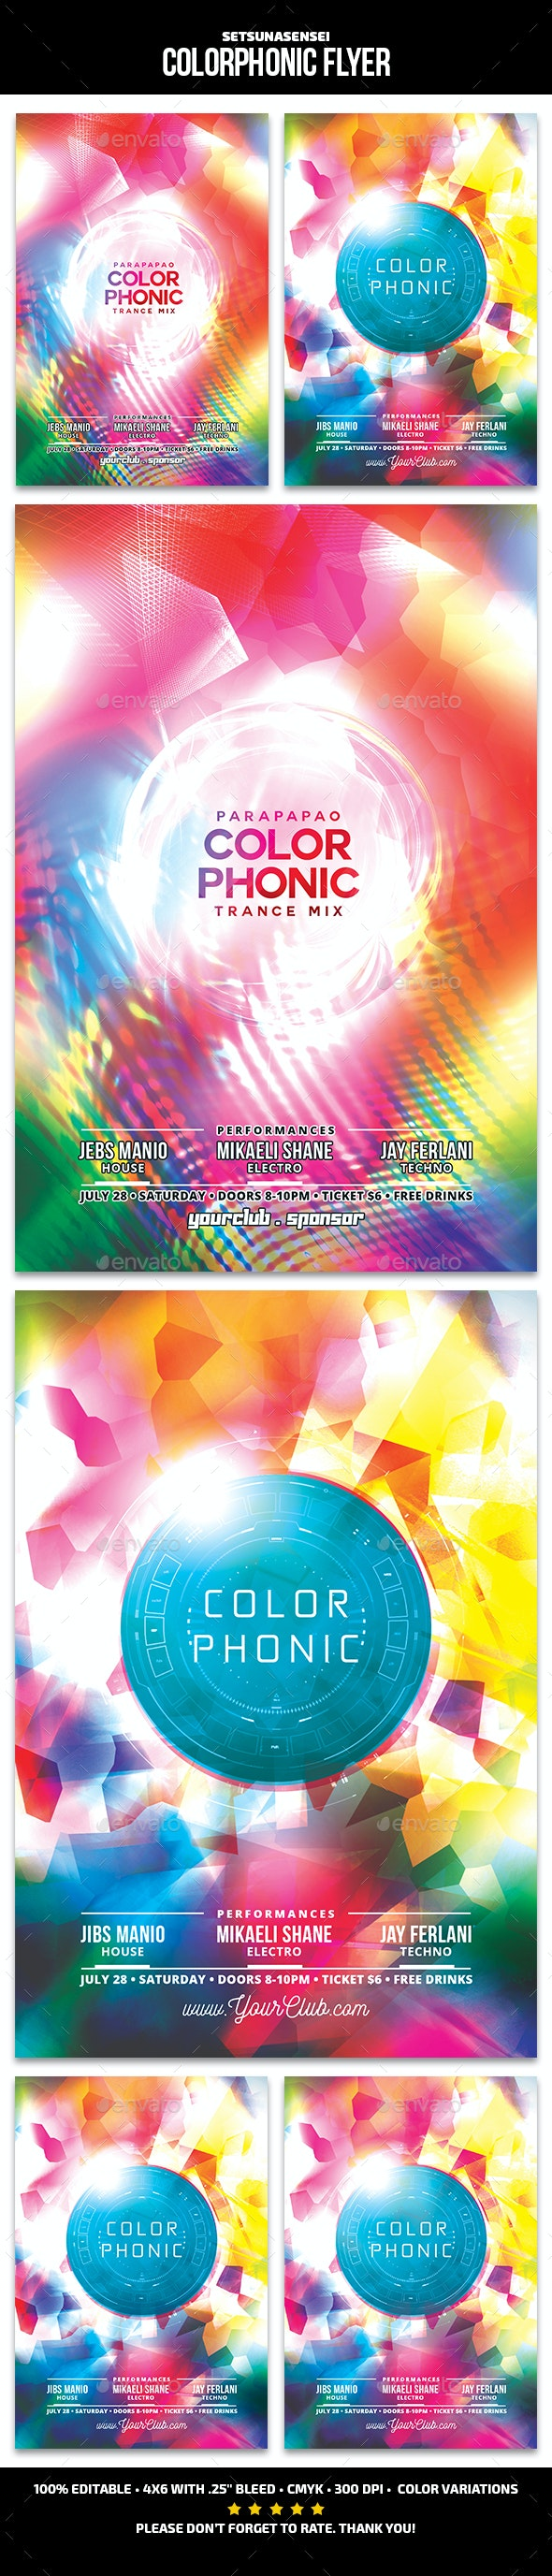 Colorphonic Flyer - Clubs & Parties Events